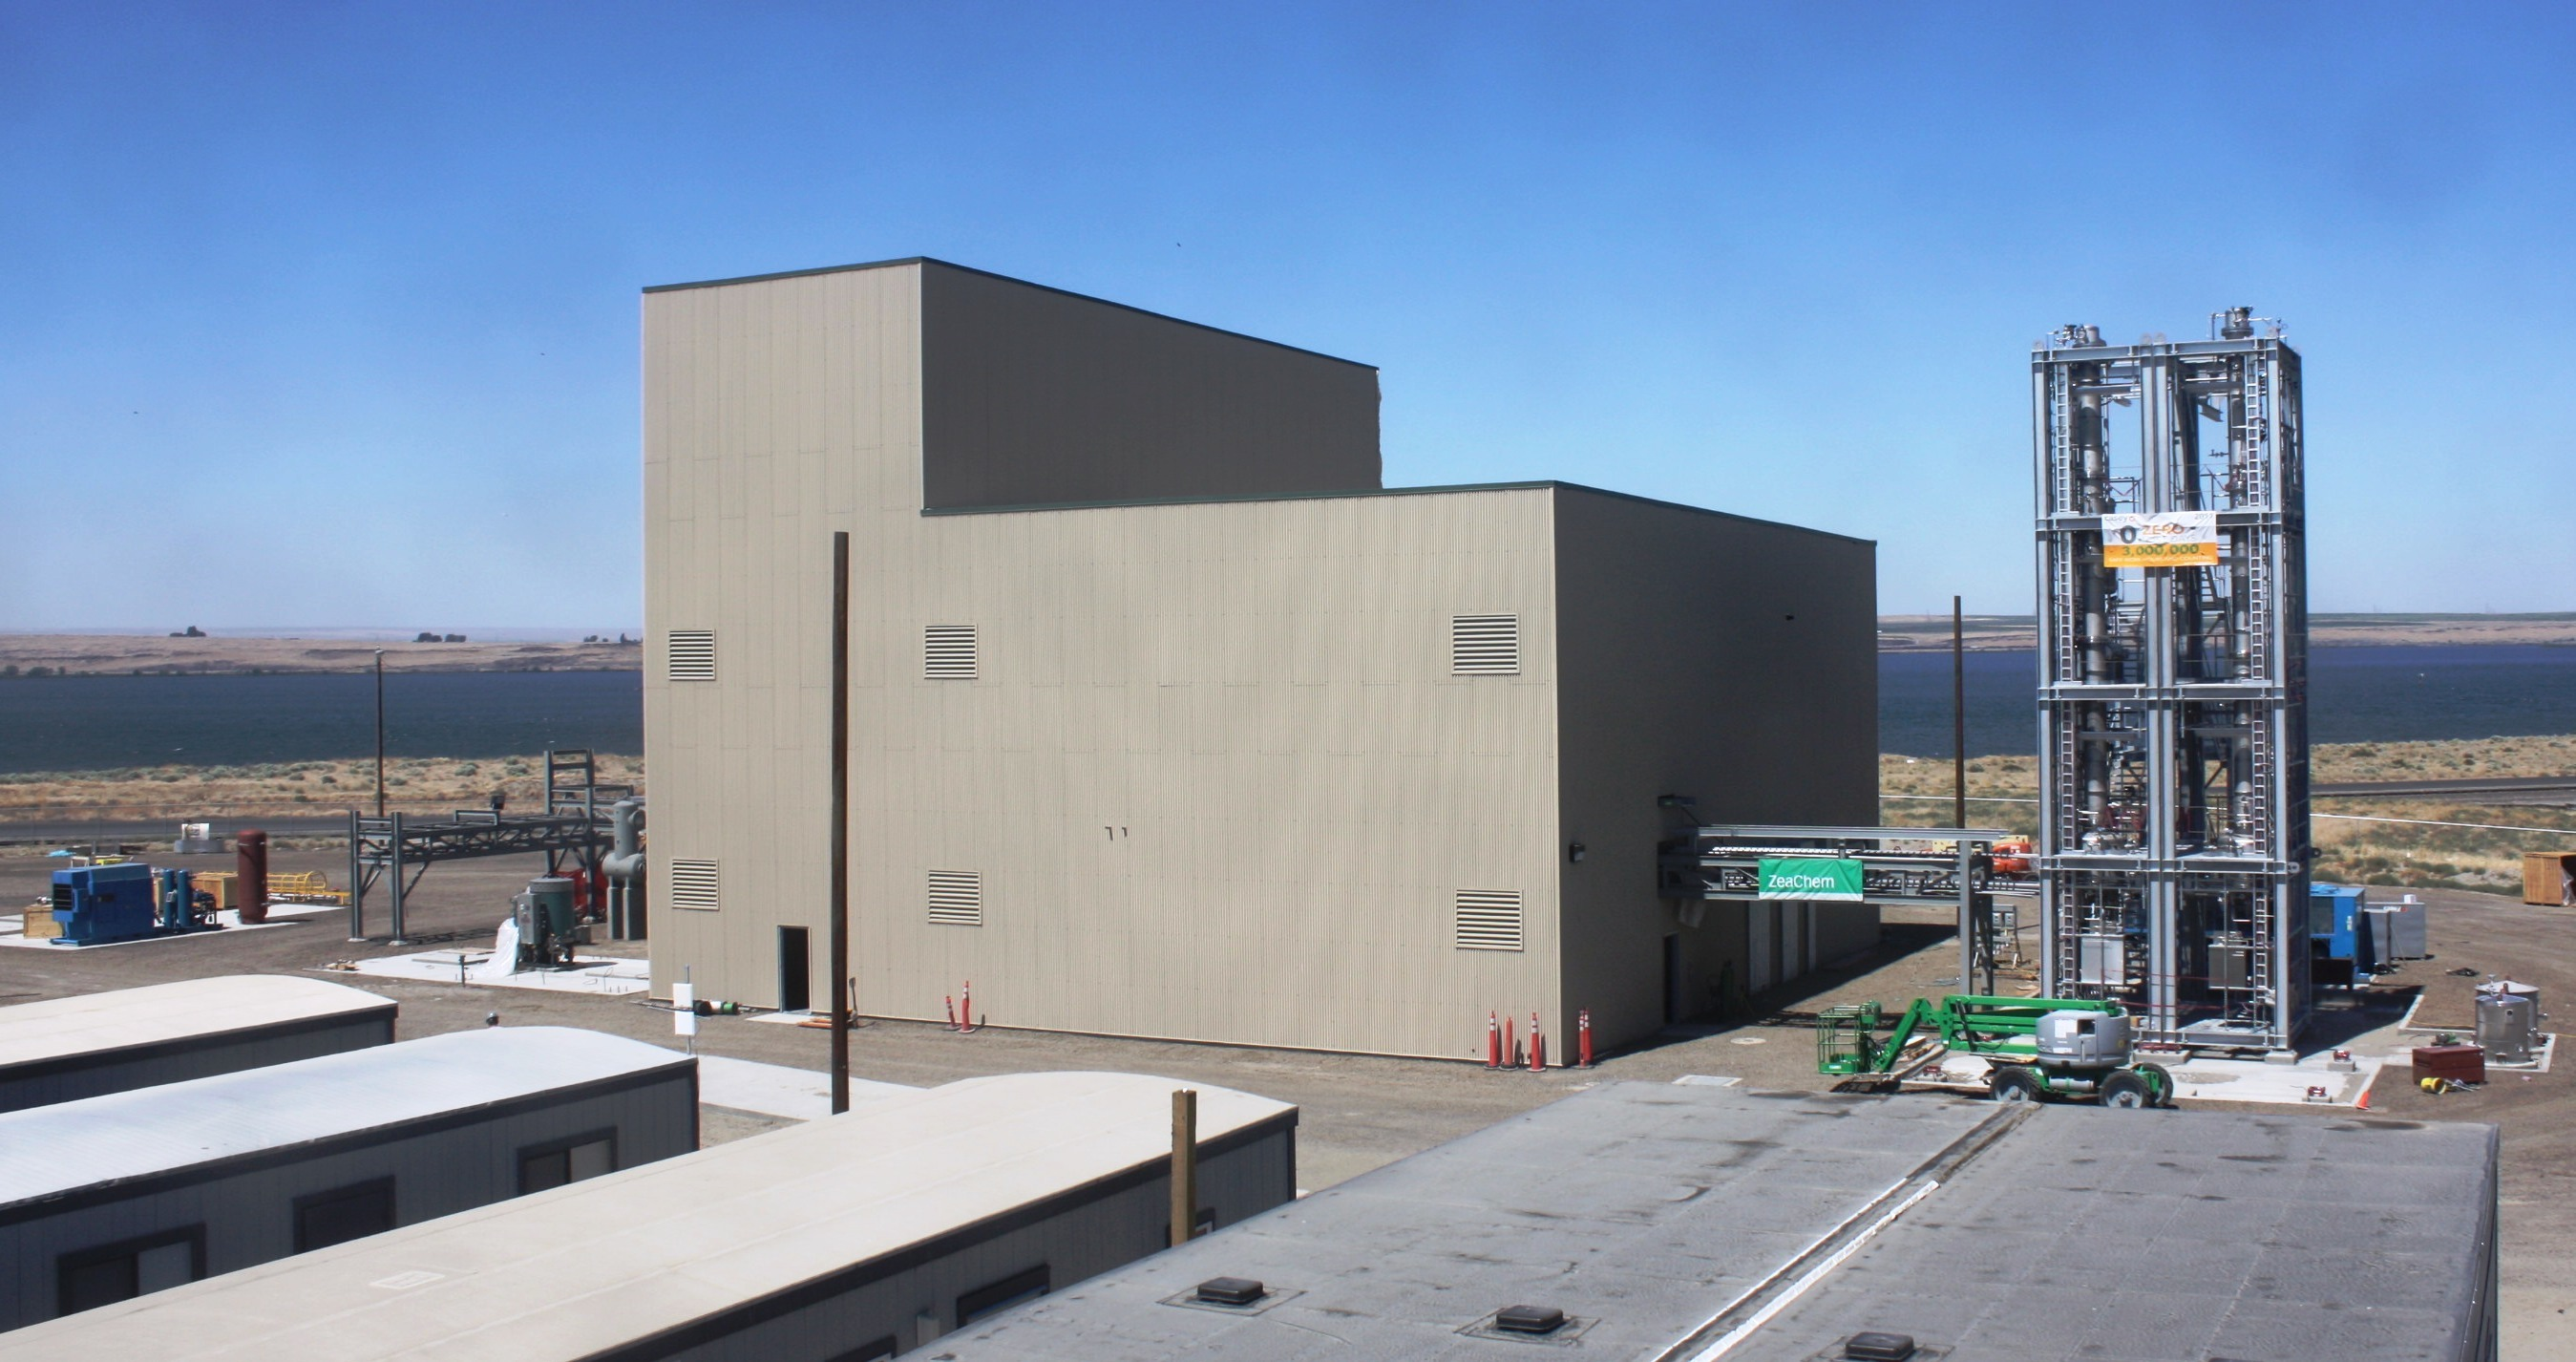 ZeaChem's demonstration facility in Oregon this fall will turn woody biomass into ethanol and other chemicals.